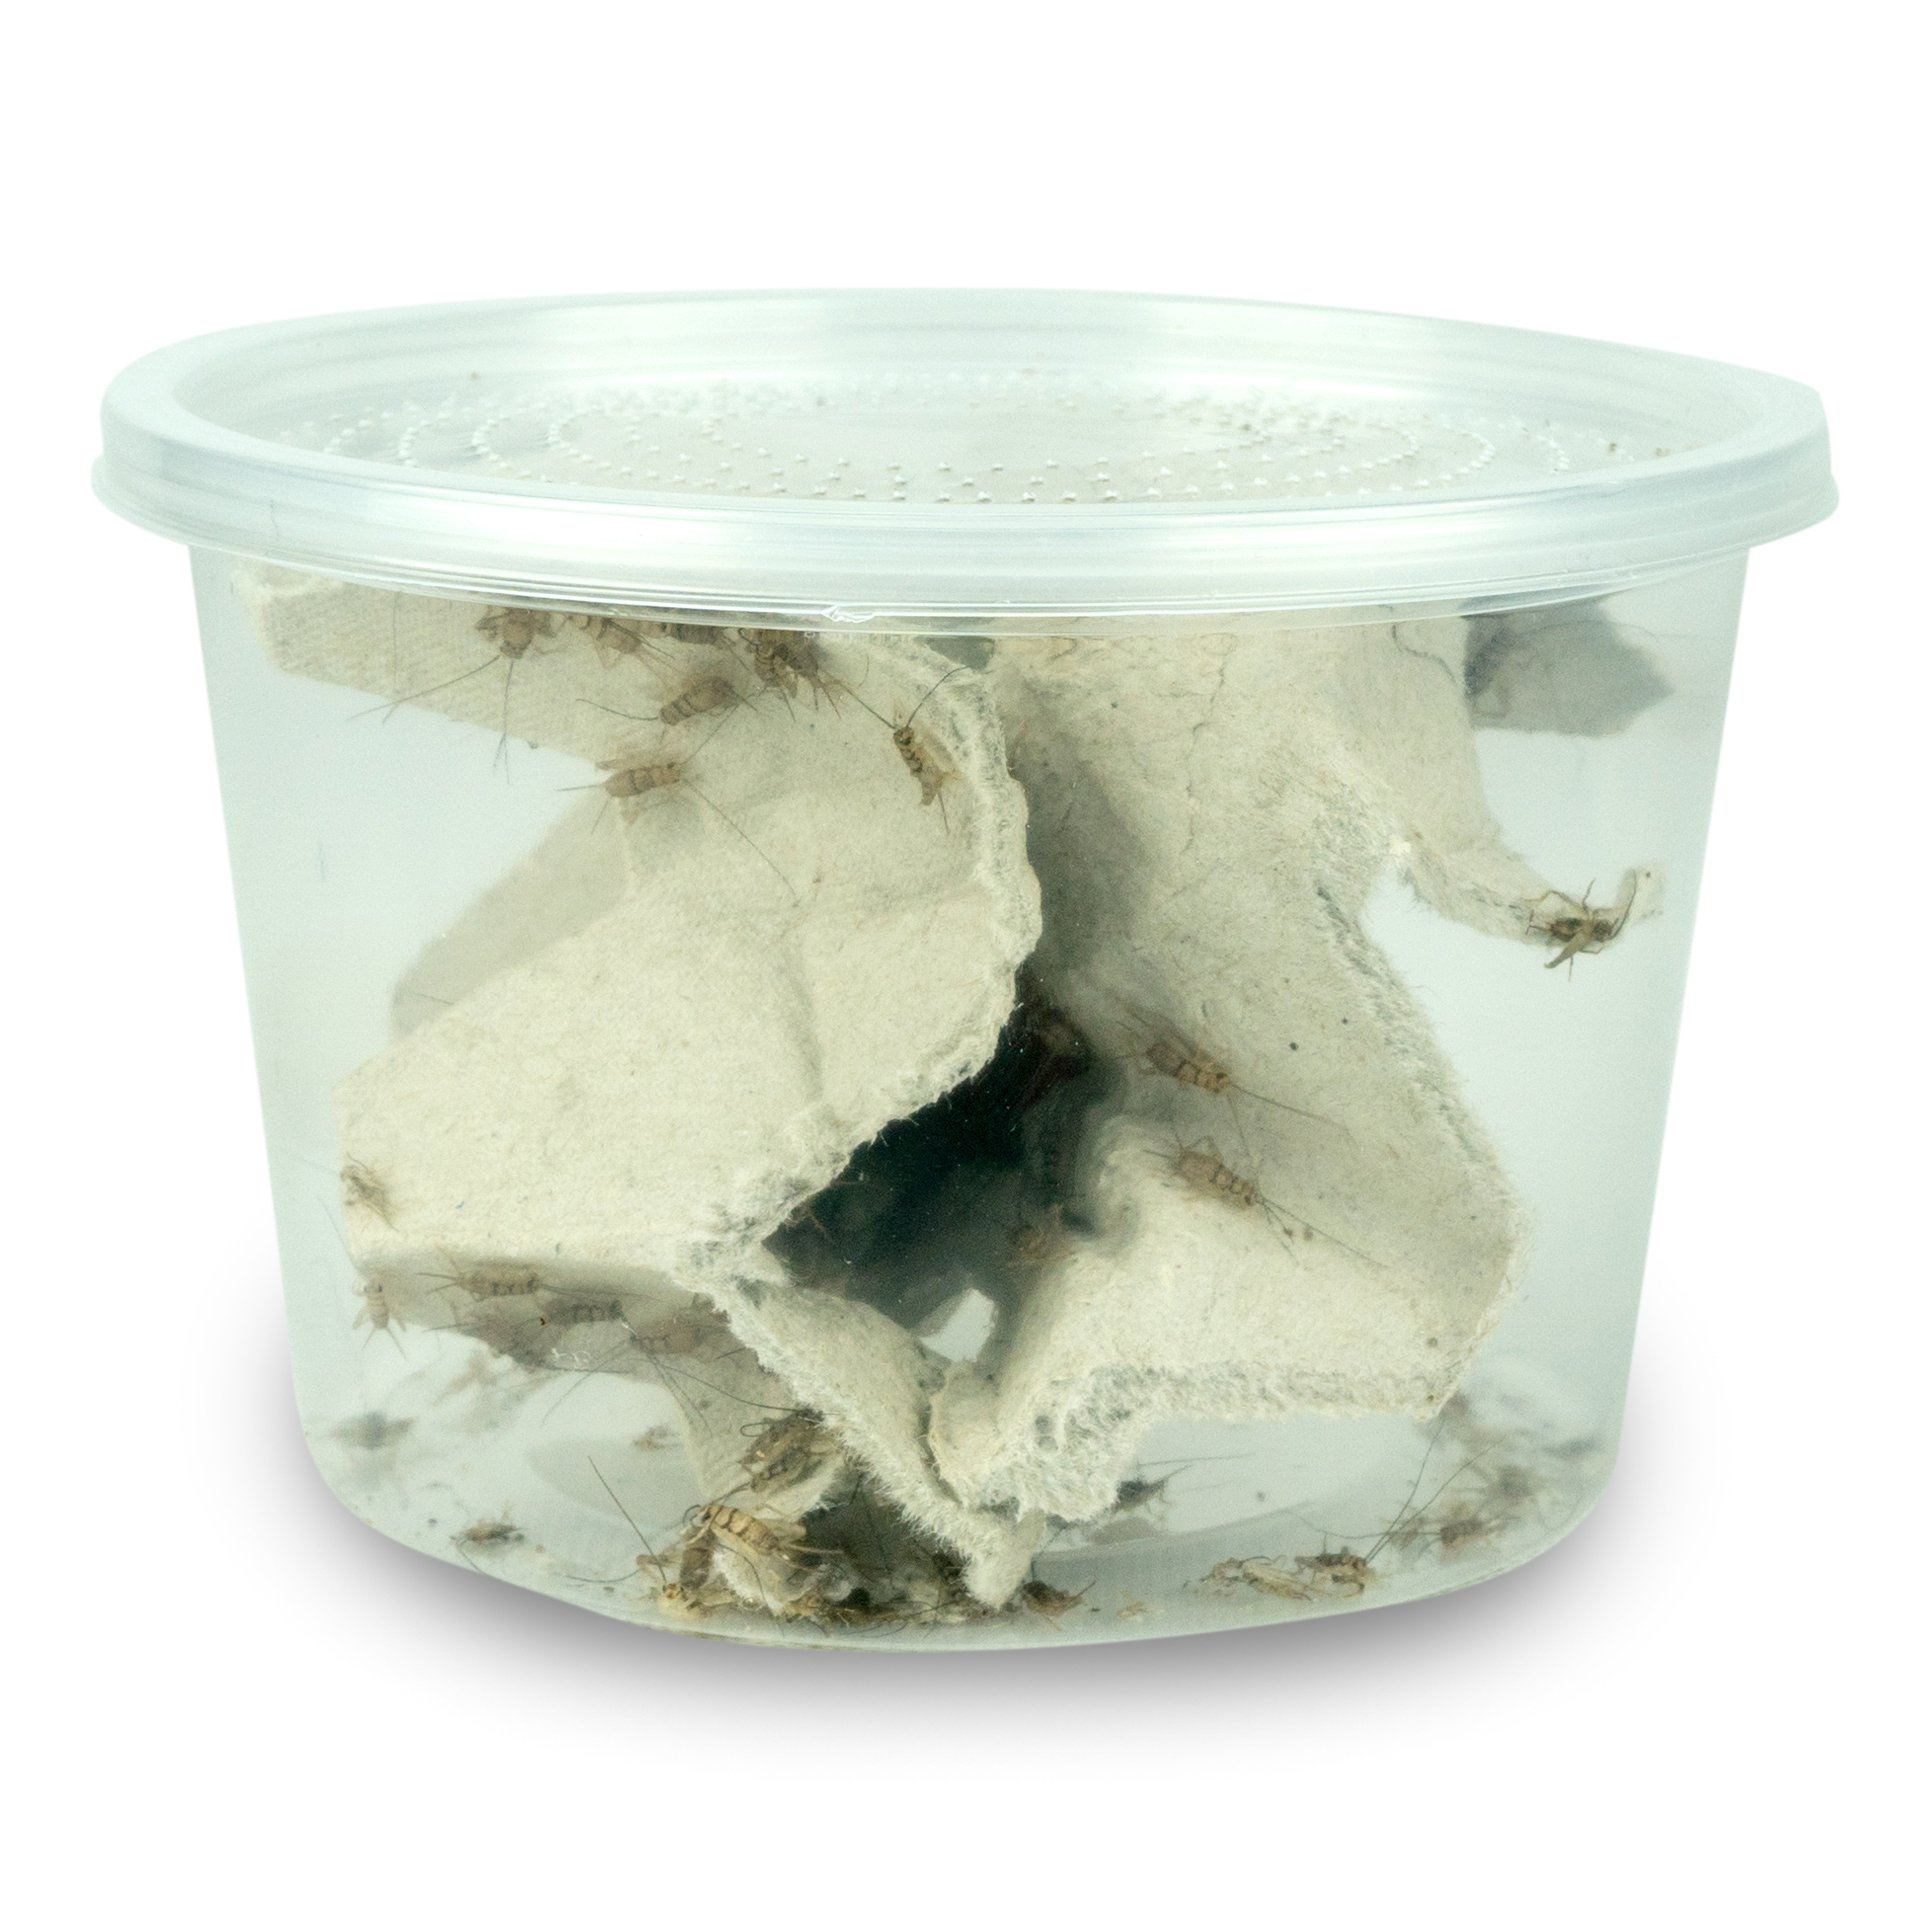 Josh's Frogs 1/4 Banded Crickets (120 Count)